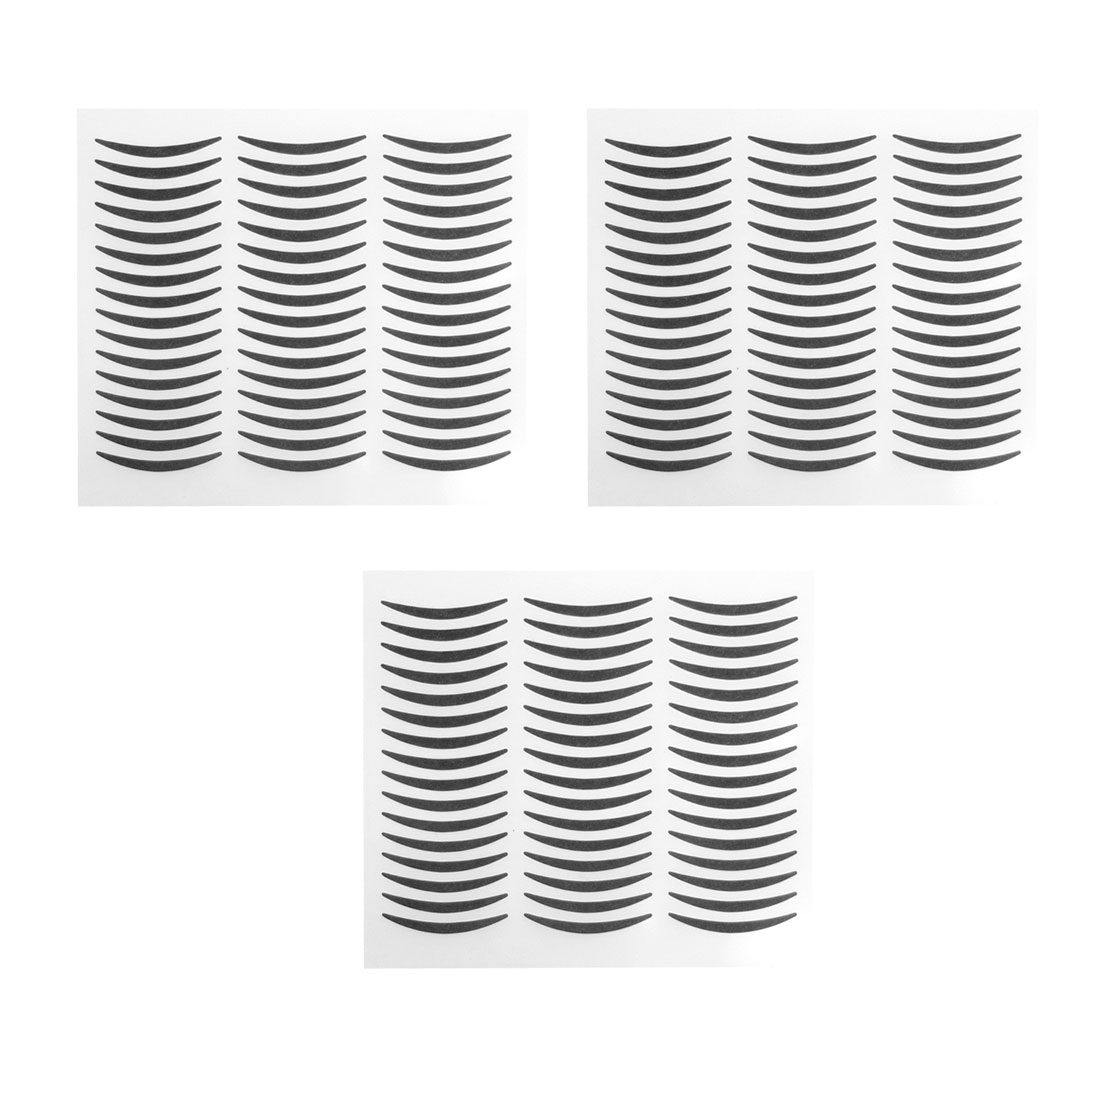 72 Pairs Lady Party Cosmetics Makeup Double Eyelid Sticker Black